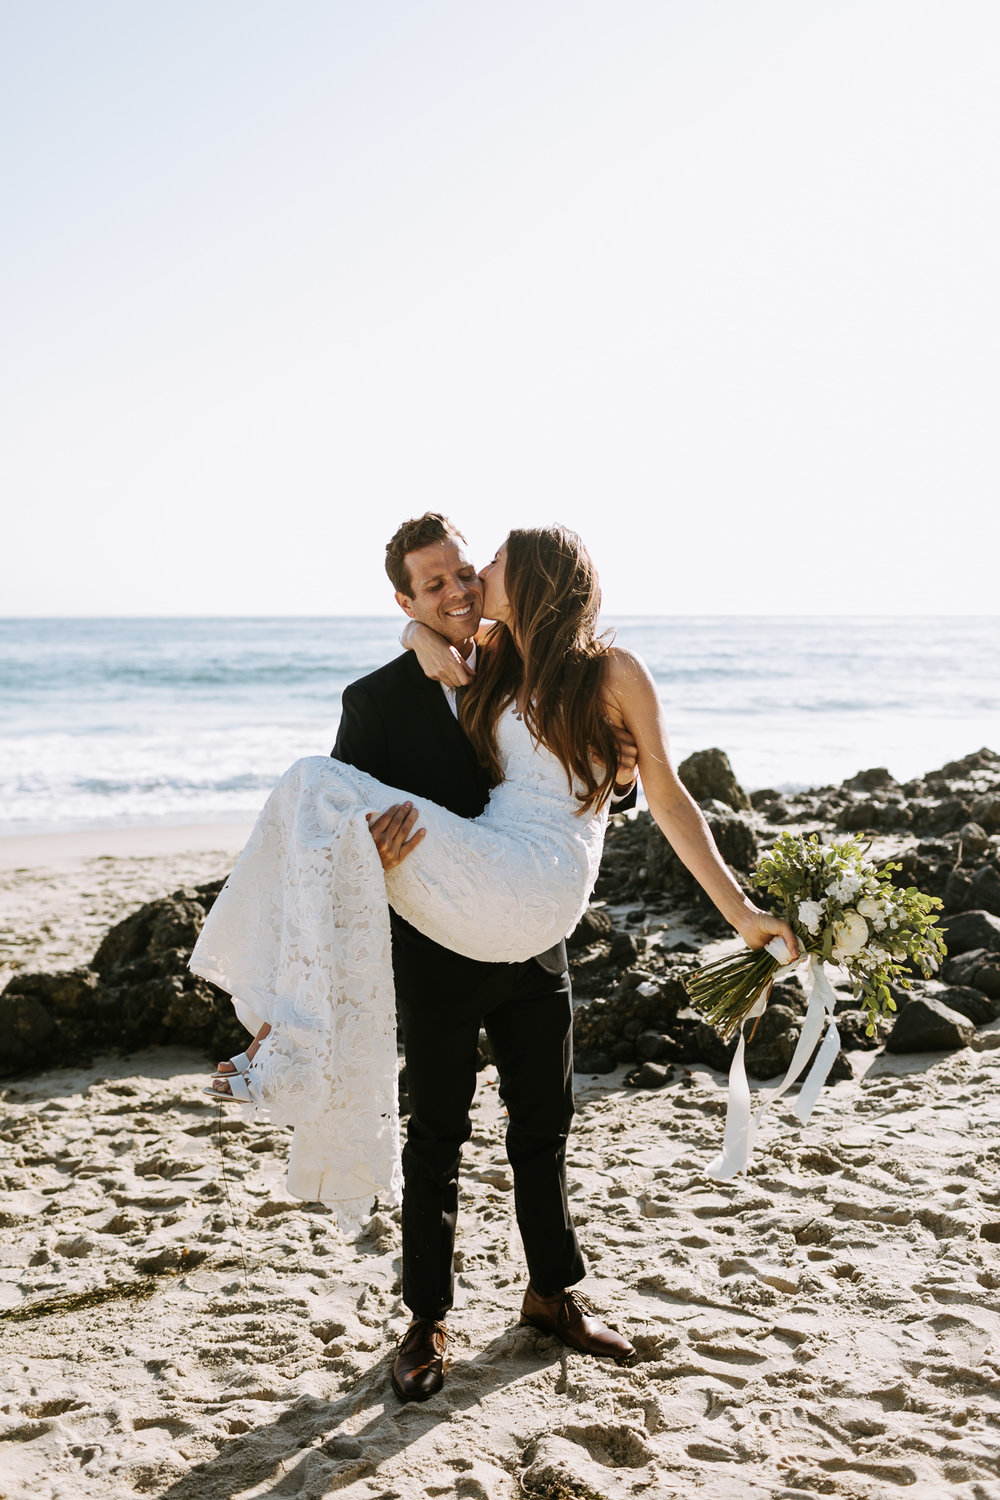 LagunaBeach-WeddingPhotographer-44.jpg